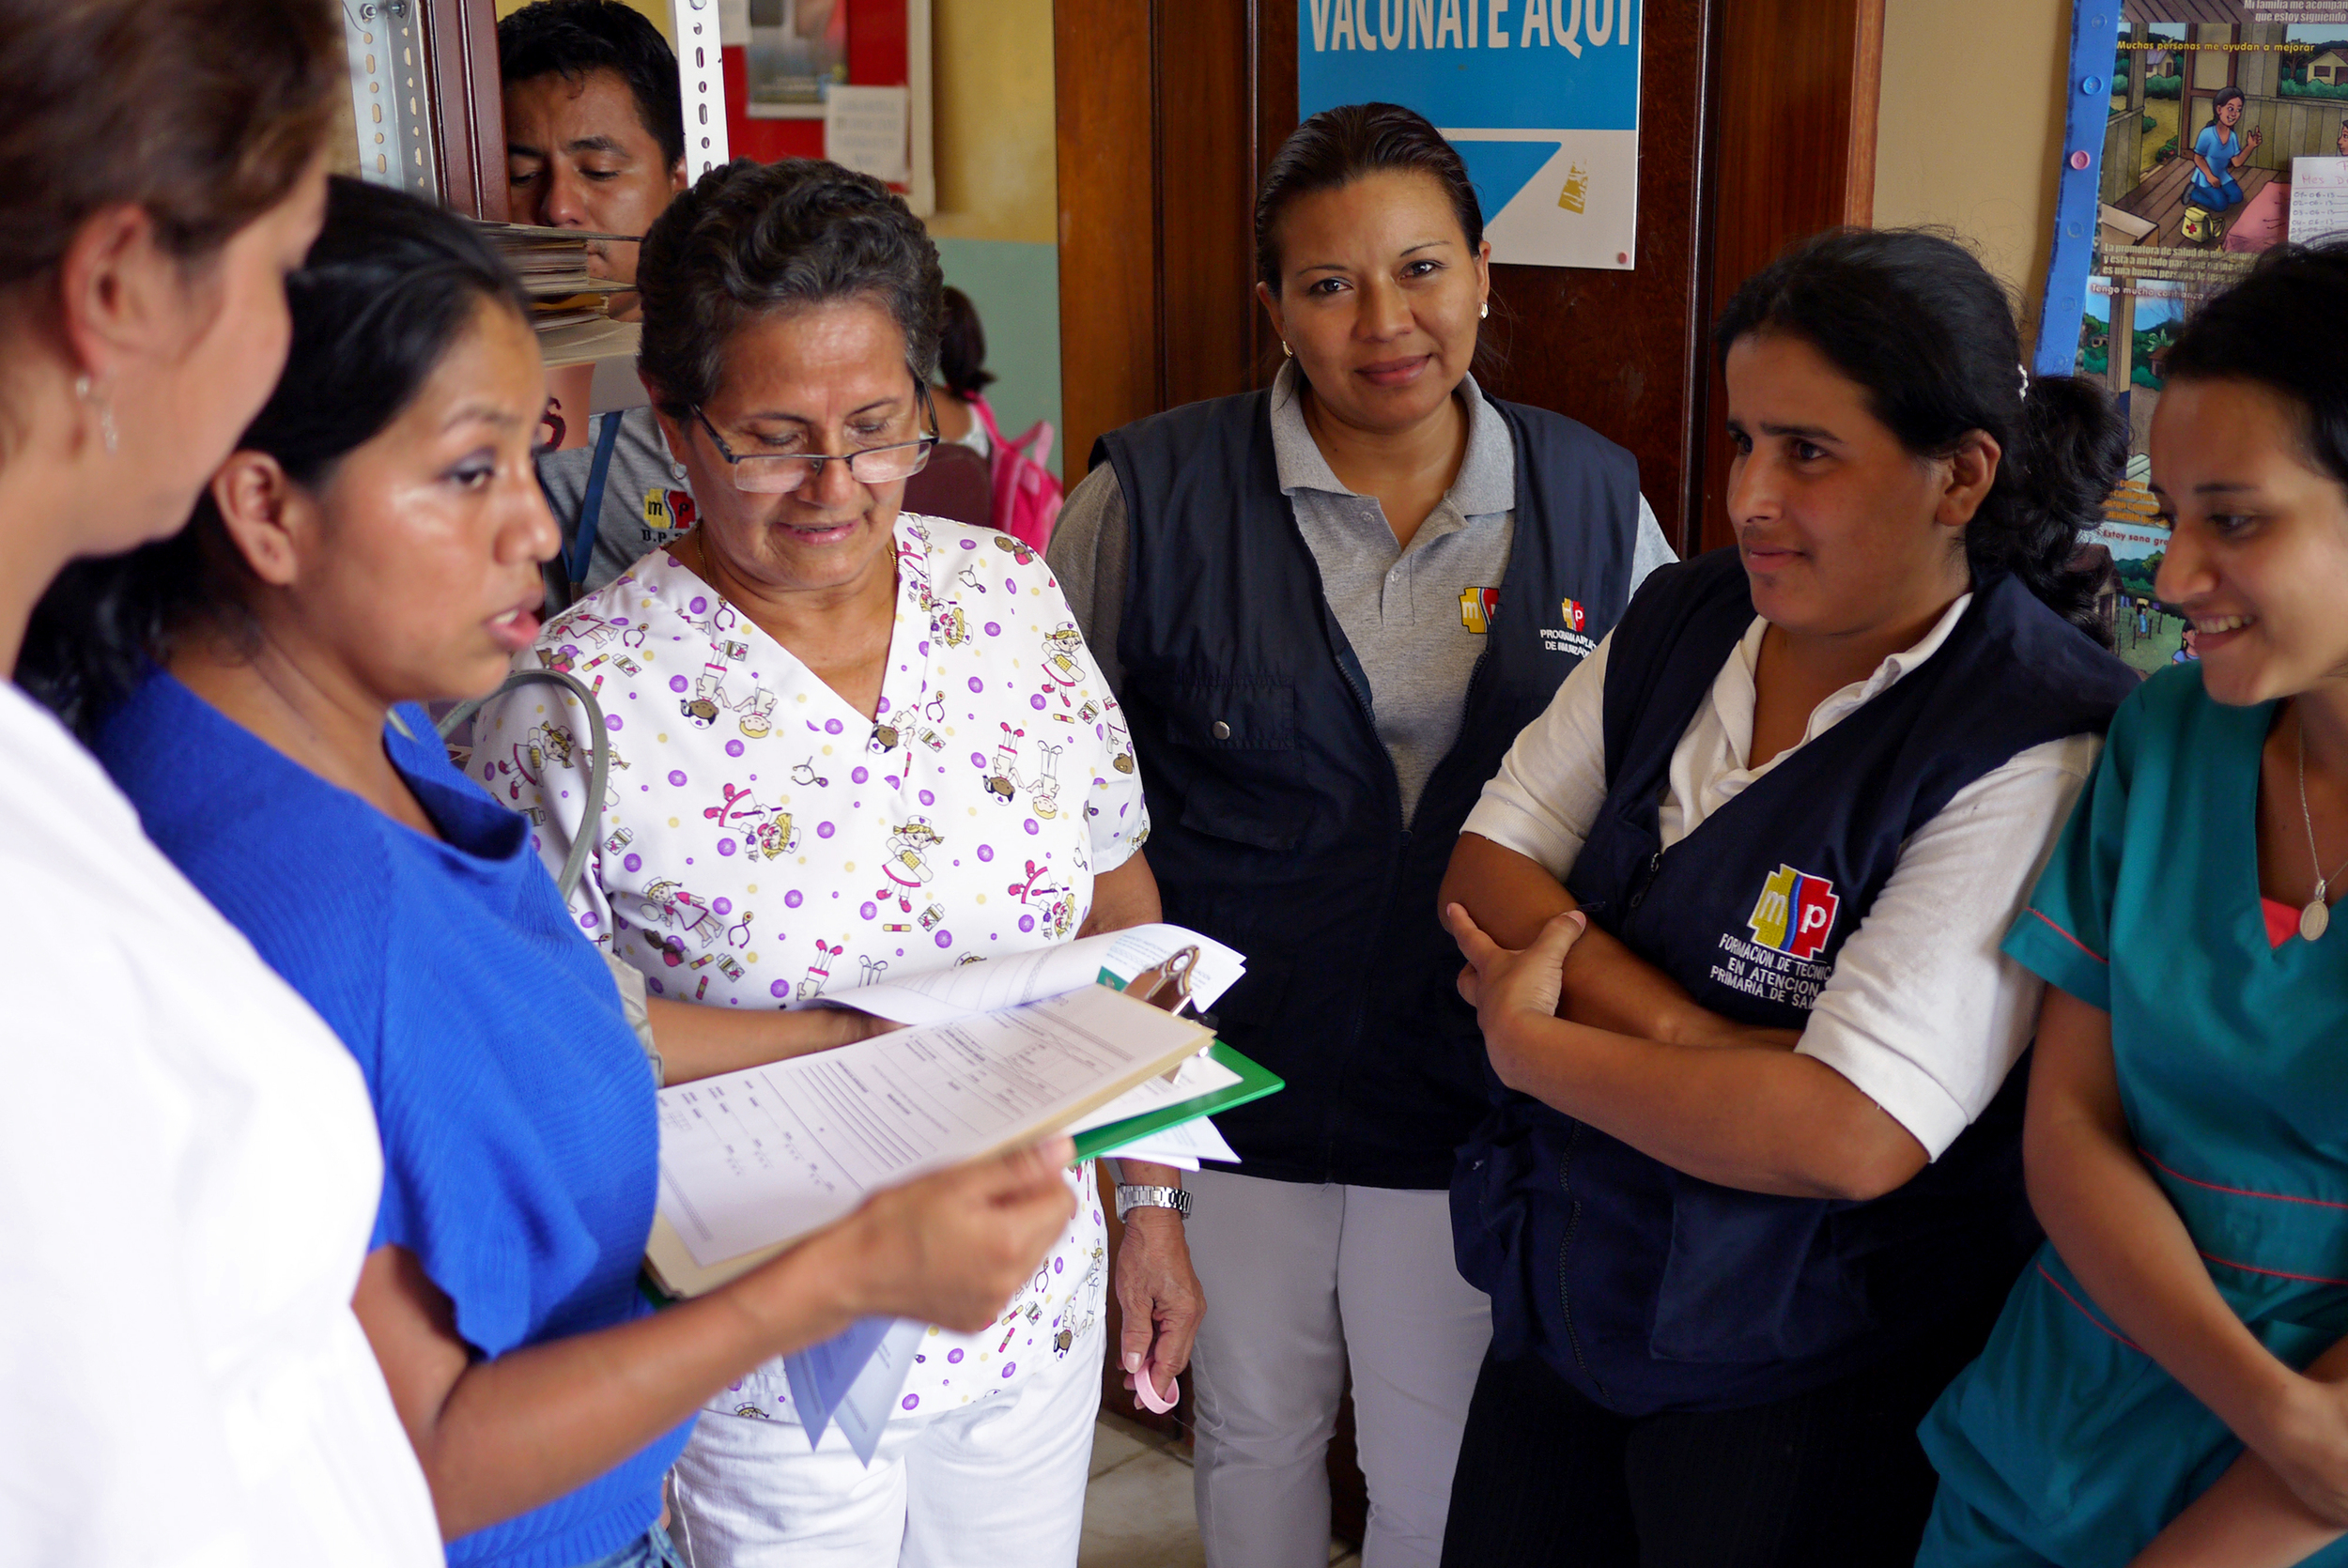 Guadalupe (in blue), a vaccine expert with the Ministry of Public Health in Ecuador, trains the nurses on how to track data on our forms. Photo taken: June 25, 2013.